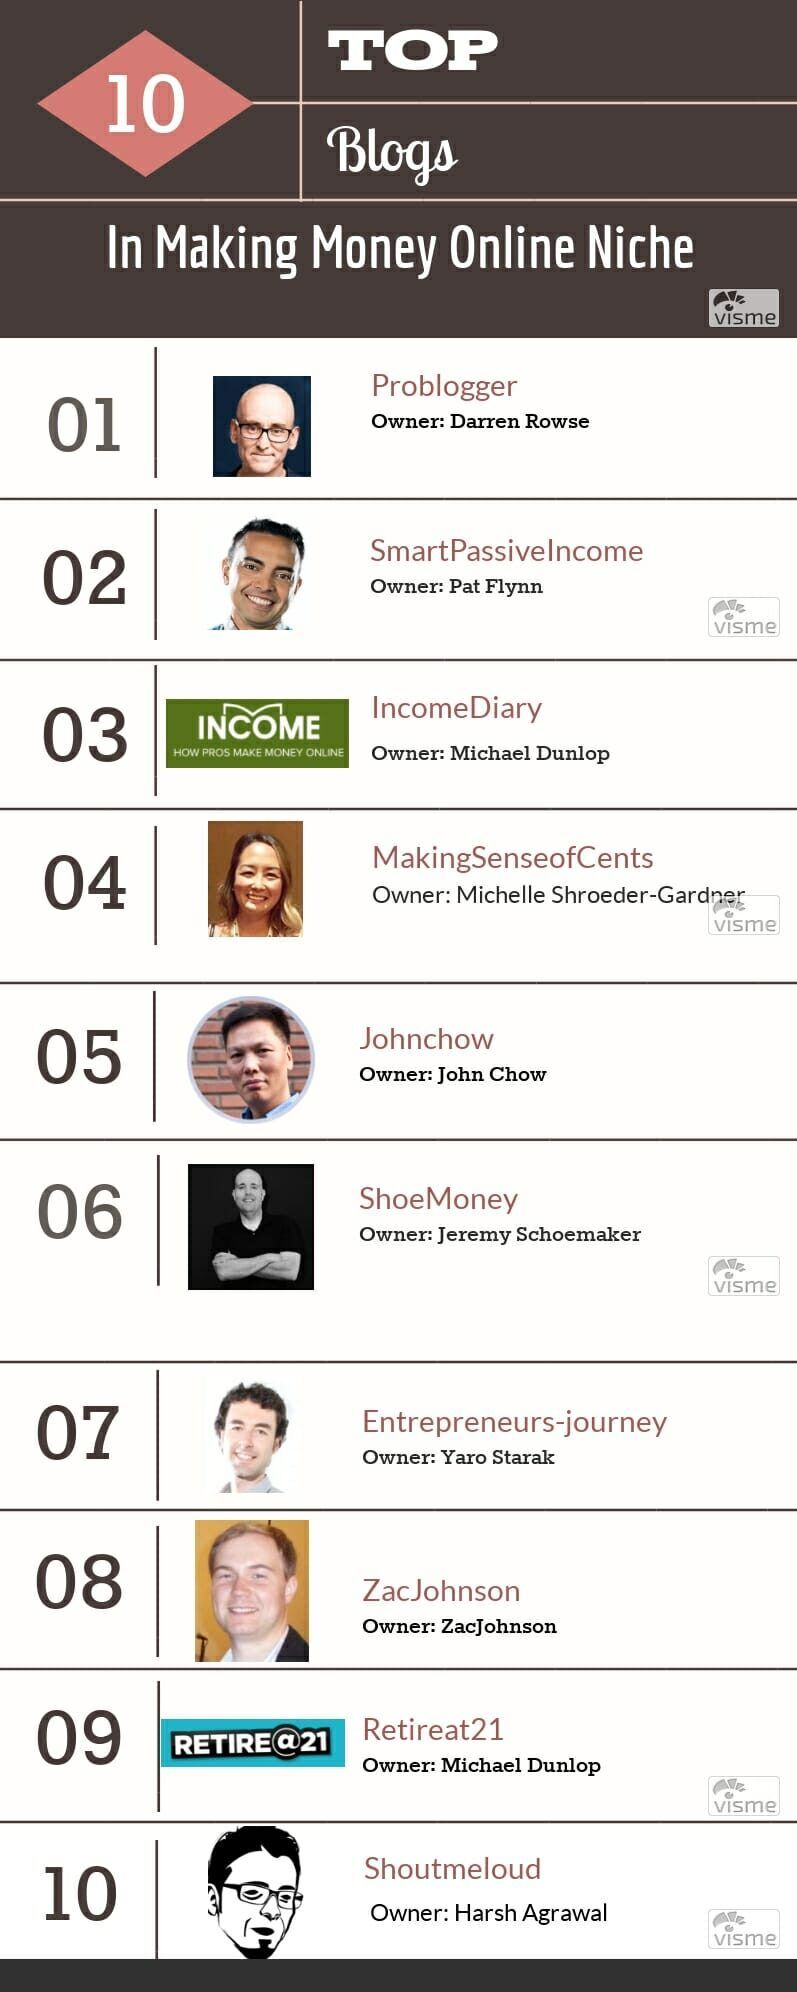 Top 10 blogs in making money online niche Infographic